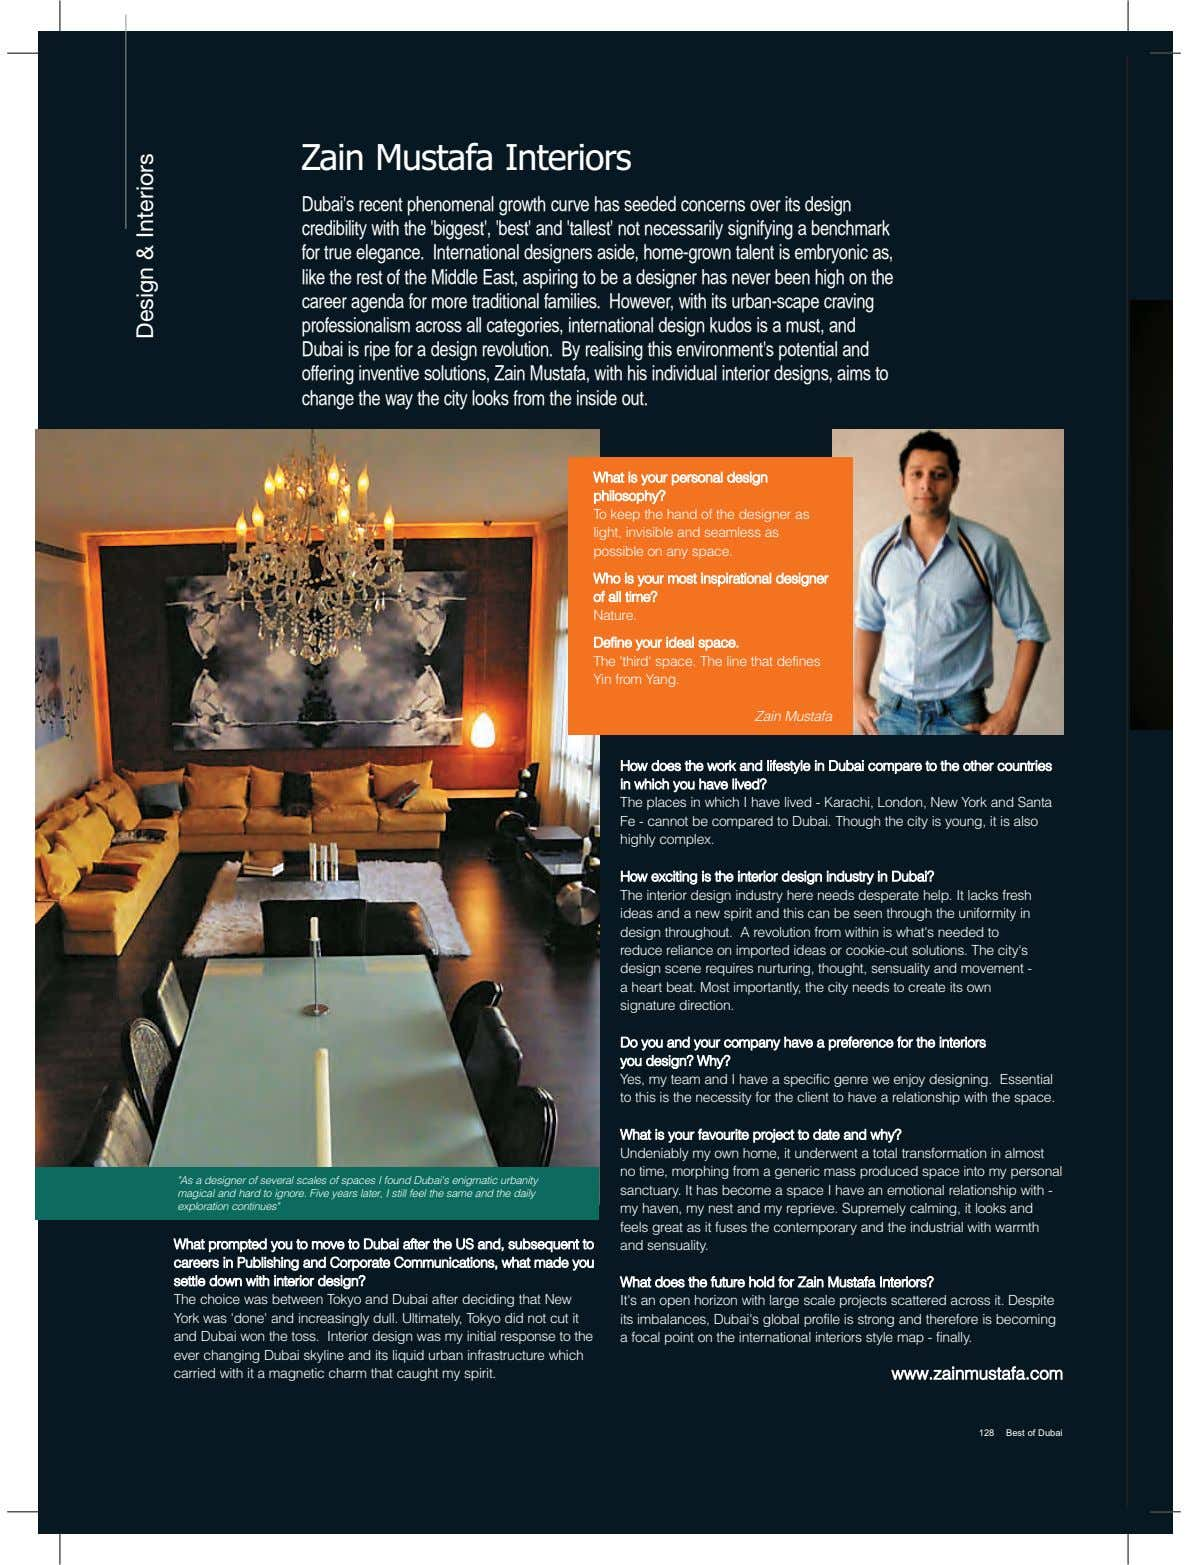 Zain Mustafa Interiors Dubai's recent phenomenal growth curve has seeded concerns over its design credibility with